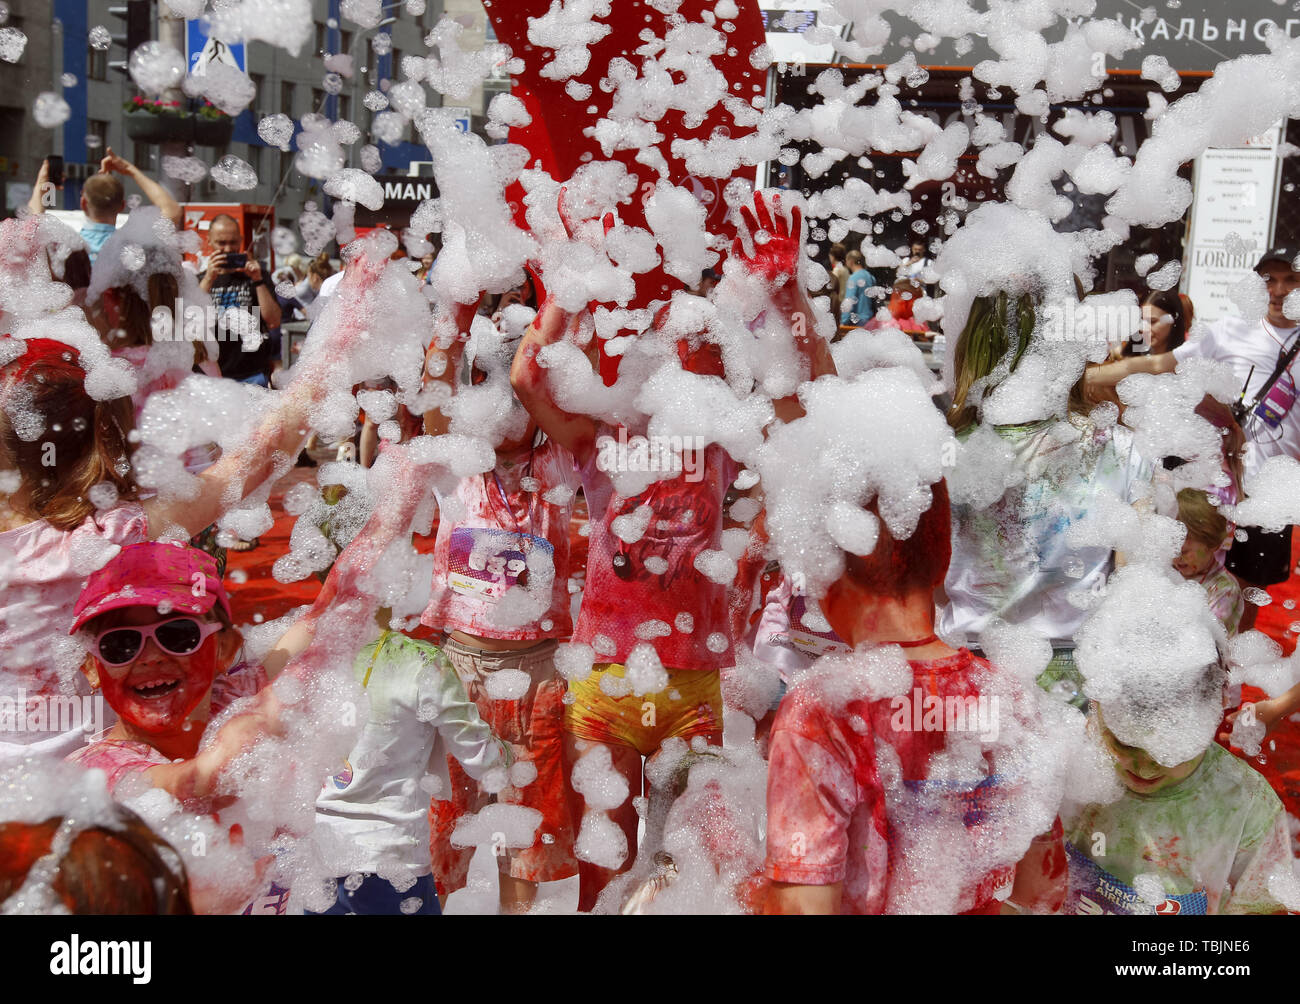 Kiev, Ukraine. 2nd June, 2019. Children play in the foam during the ''Kyiv Color Run'' in Kiev, Ukraine, on 2 June 2019. From the first event in the United States in January 2012 The Color Run has since spread across the globe leaving a trail of color and happy runners. Credit: Serg Glovny/ZUMA Wire/Alamy Live News - Stock Image